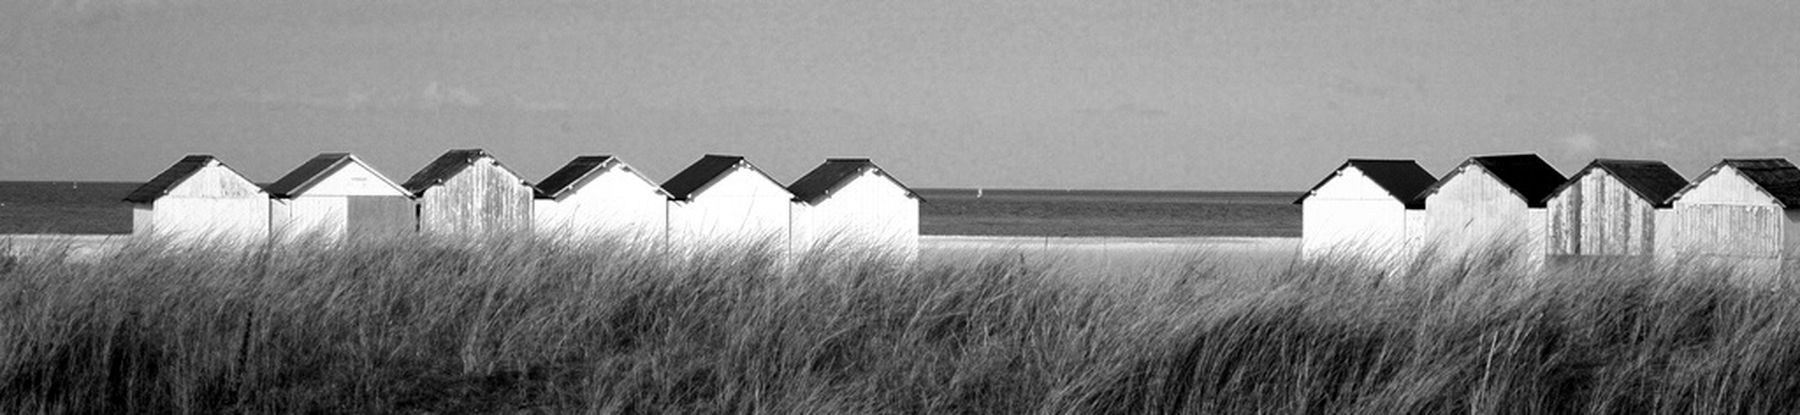 Bw_collection Beach Huts Blackandwhite Monochrome